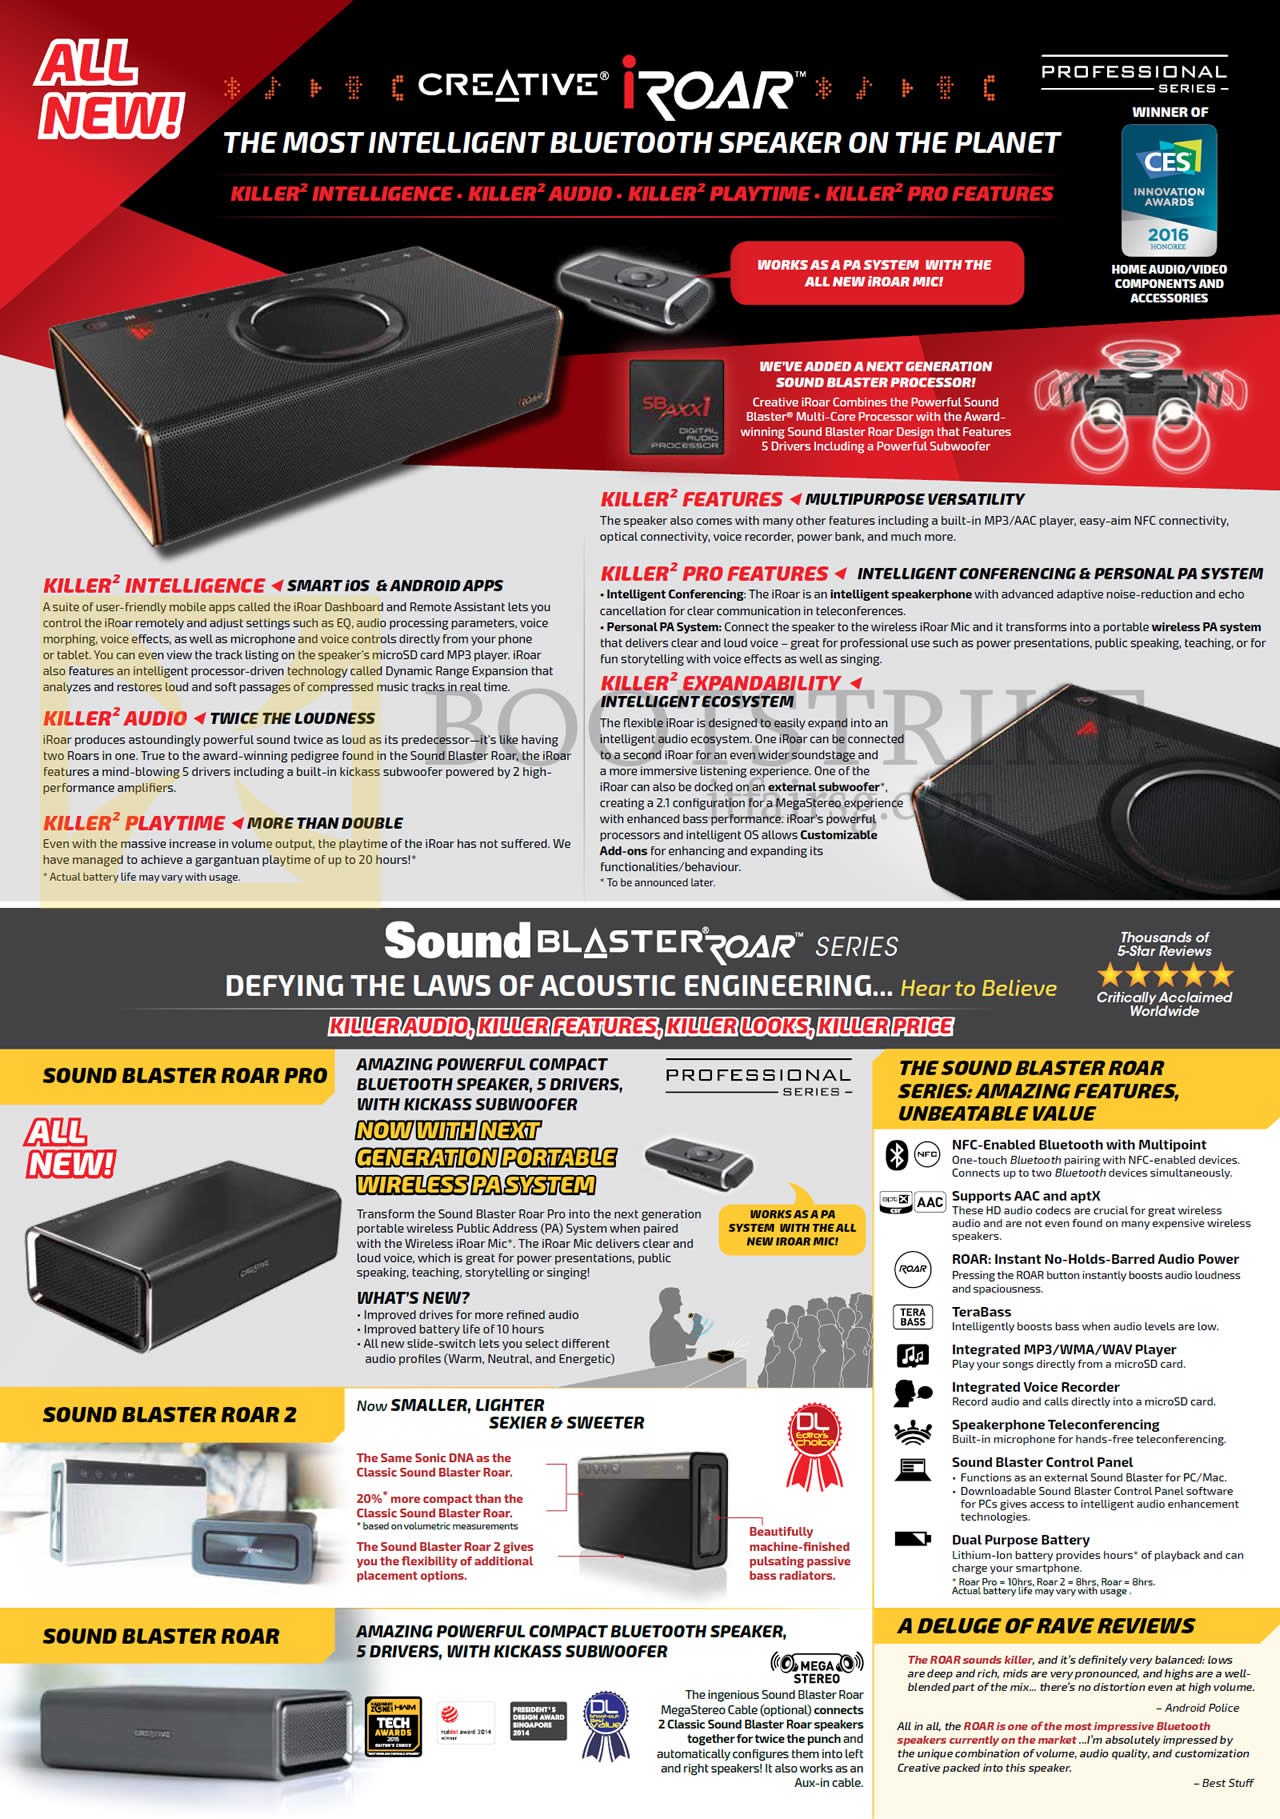 SITEX 2015 price list image brochure of Creative Bluetooth Speakers Sound Blaster Roar Pro, Roar, Roar 2